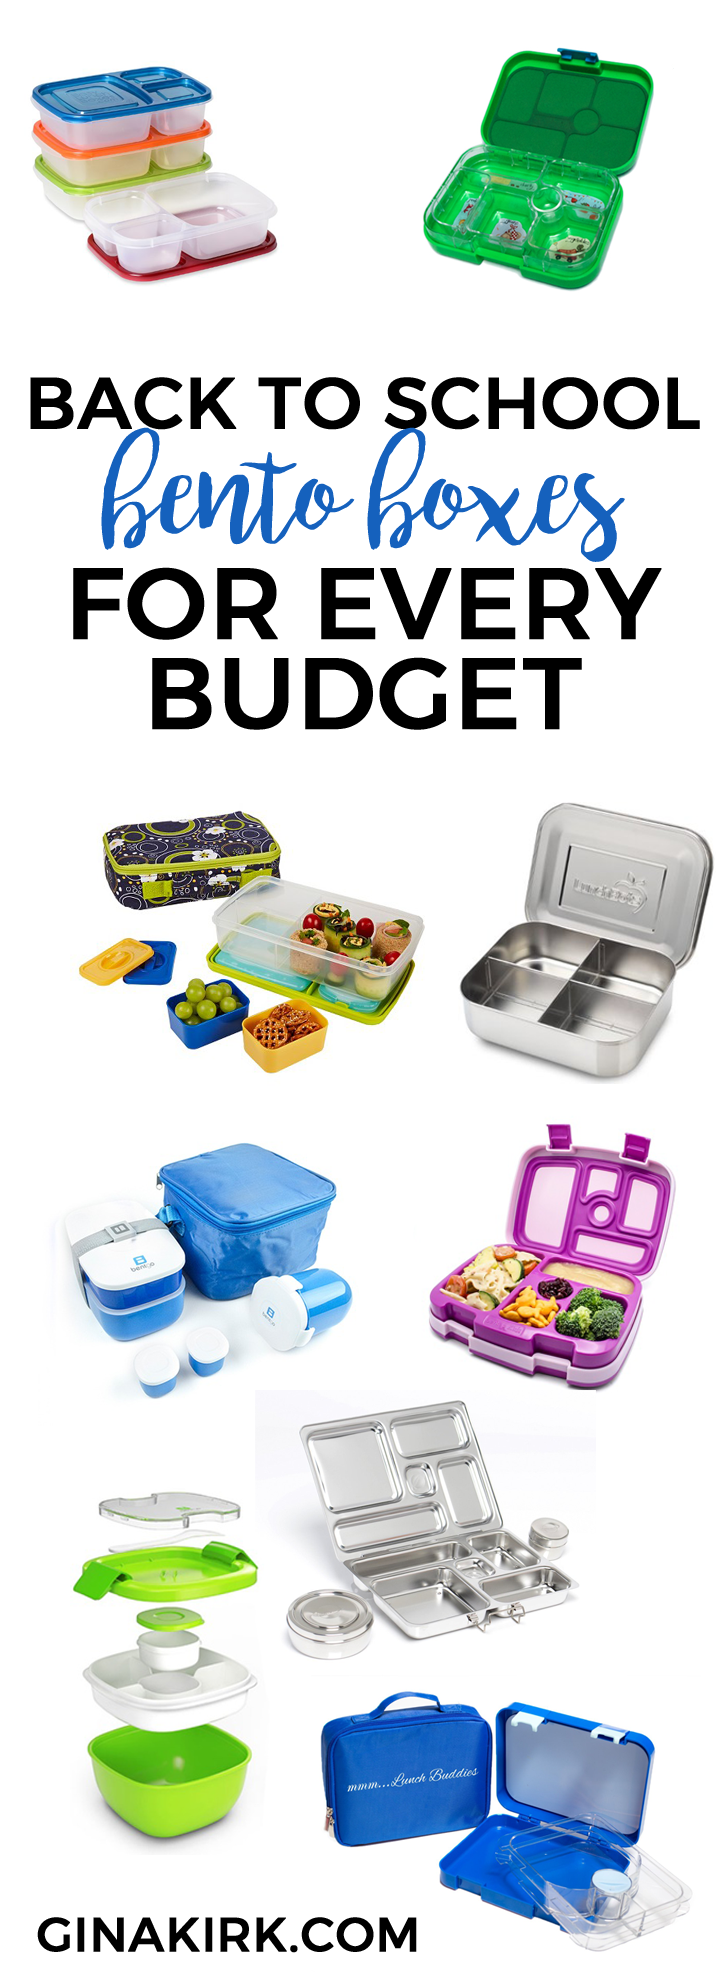 Back to school bento boxes for every budget GinaKirk.com